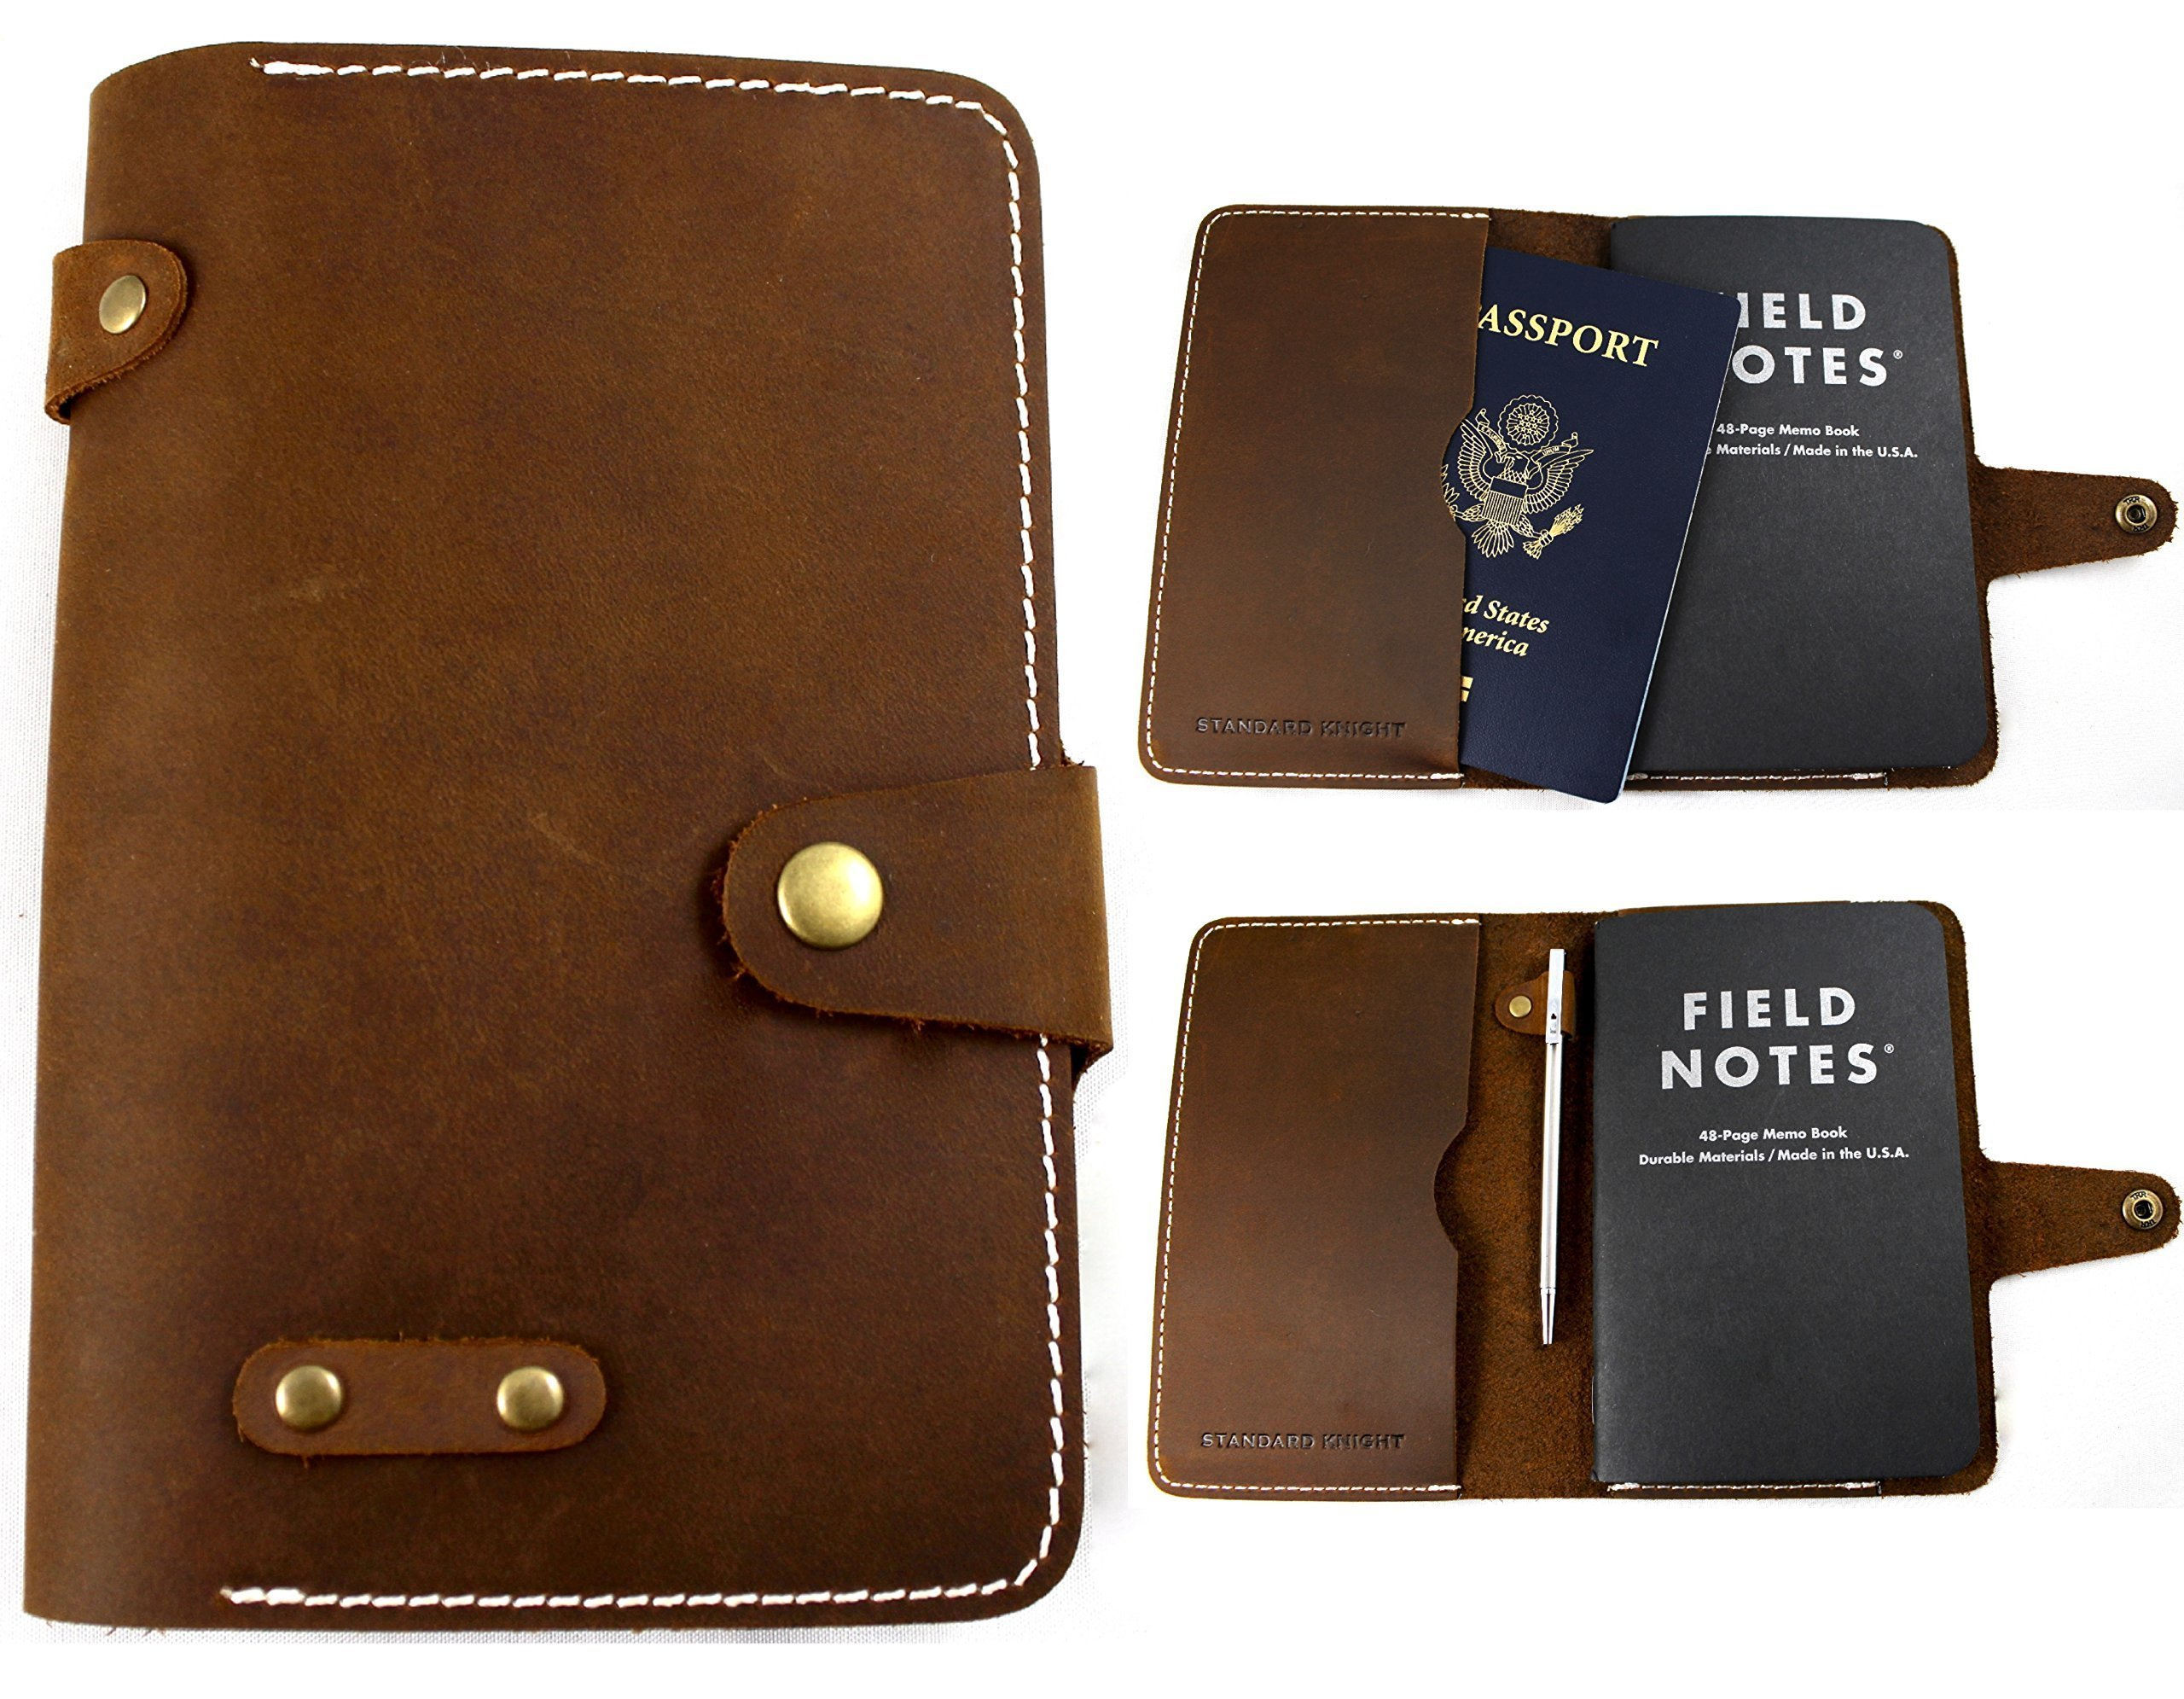 Leather Passport and Field Notes Cover - Made in the USA - Vintage, Minimalist Design - 100% Full-Grain Rustic Crazy Horse Leather - Fits Field Notes, Moleskin Cahier, and Pocket Rhodia by Standard Knight